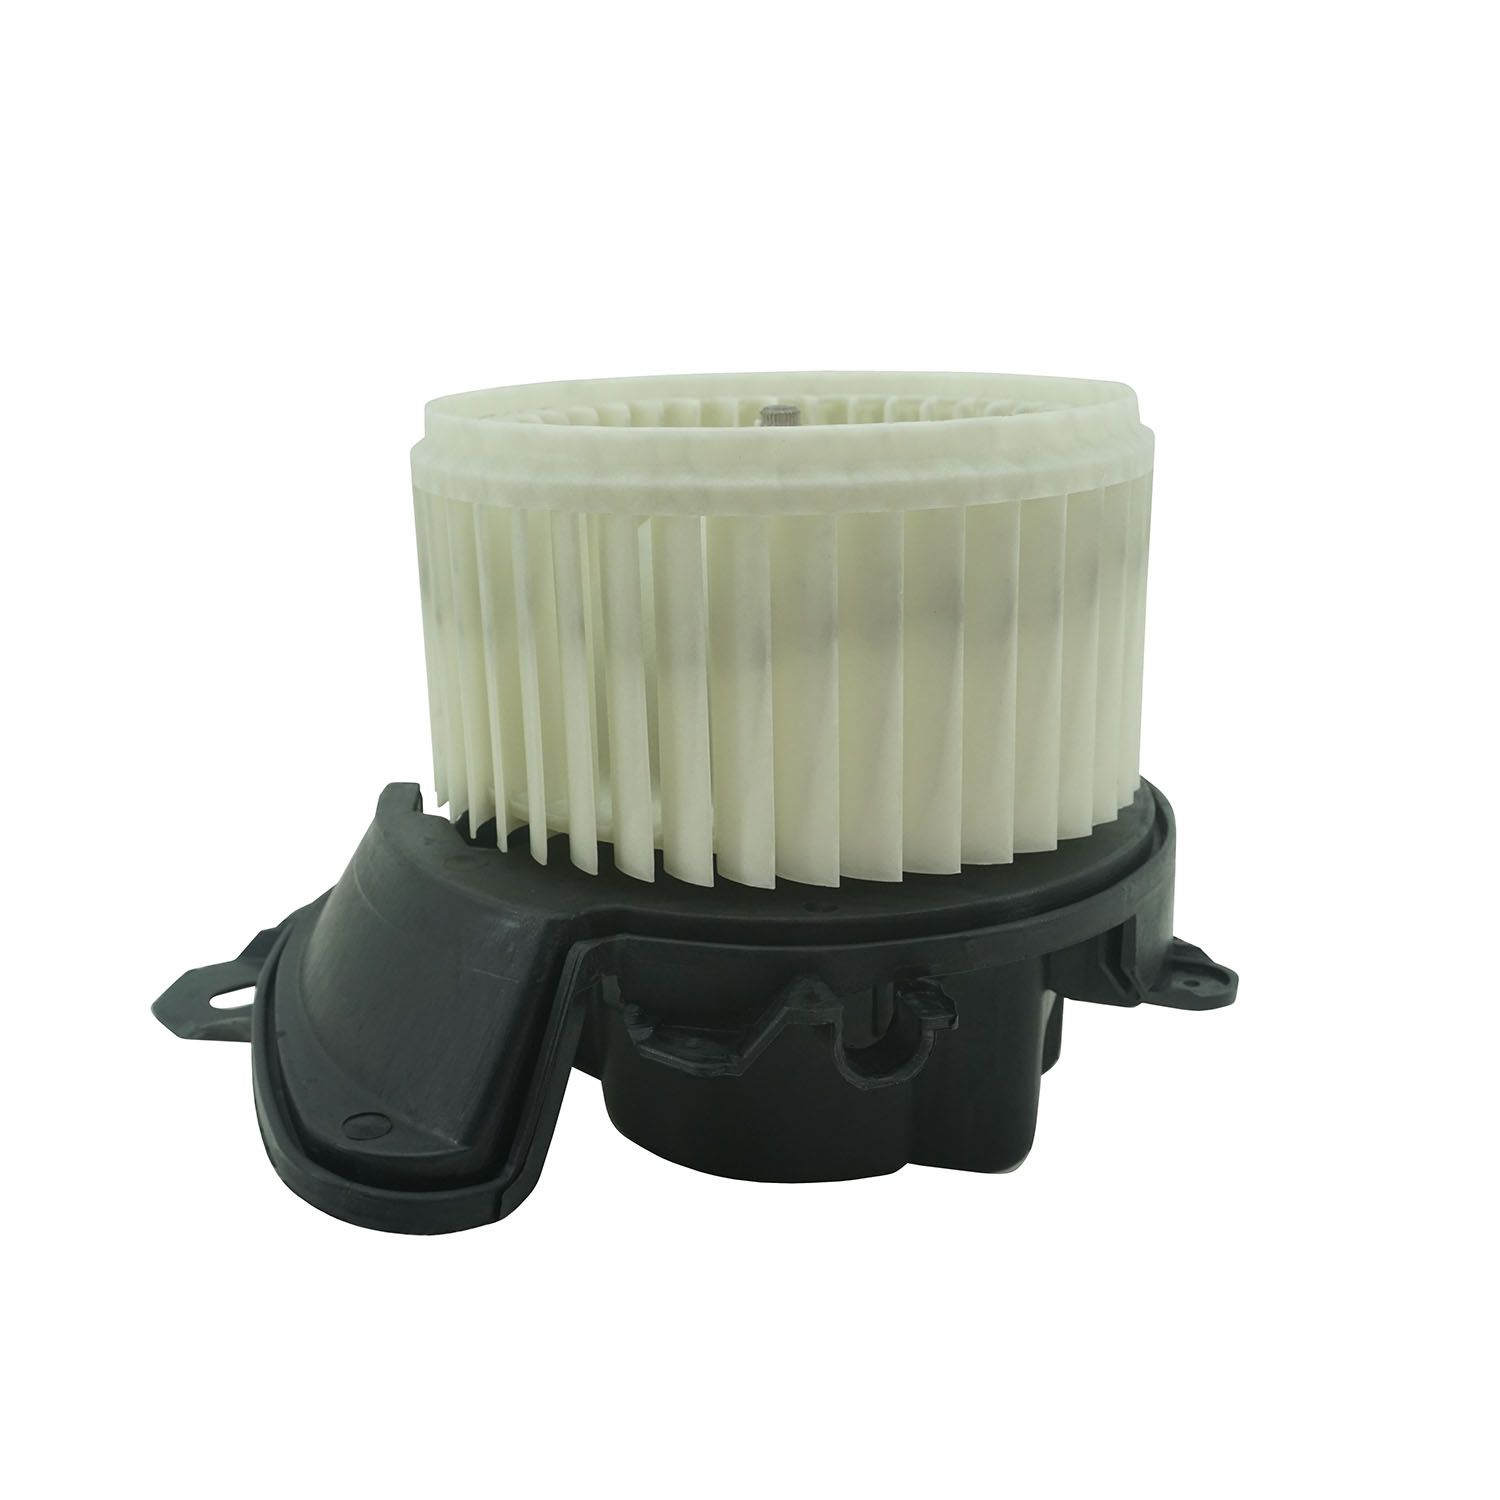 Ventilador Interno do Renault Scenic -12 V